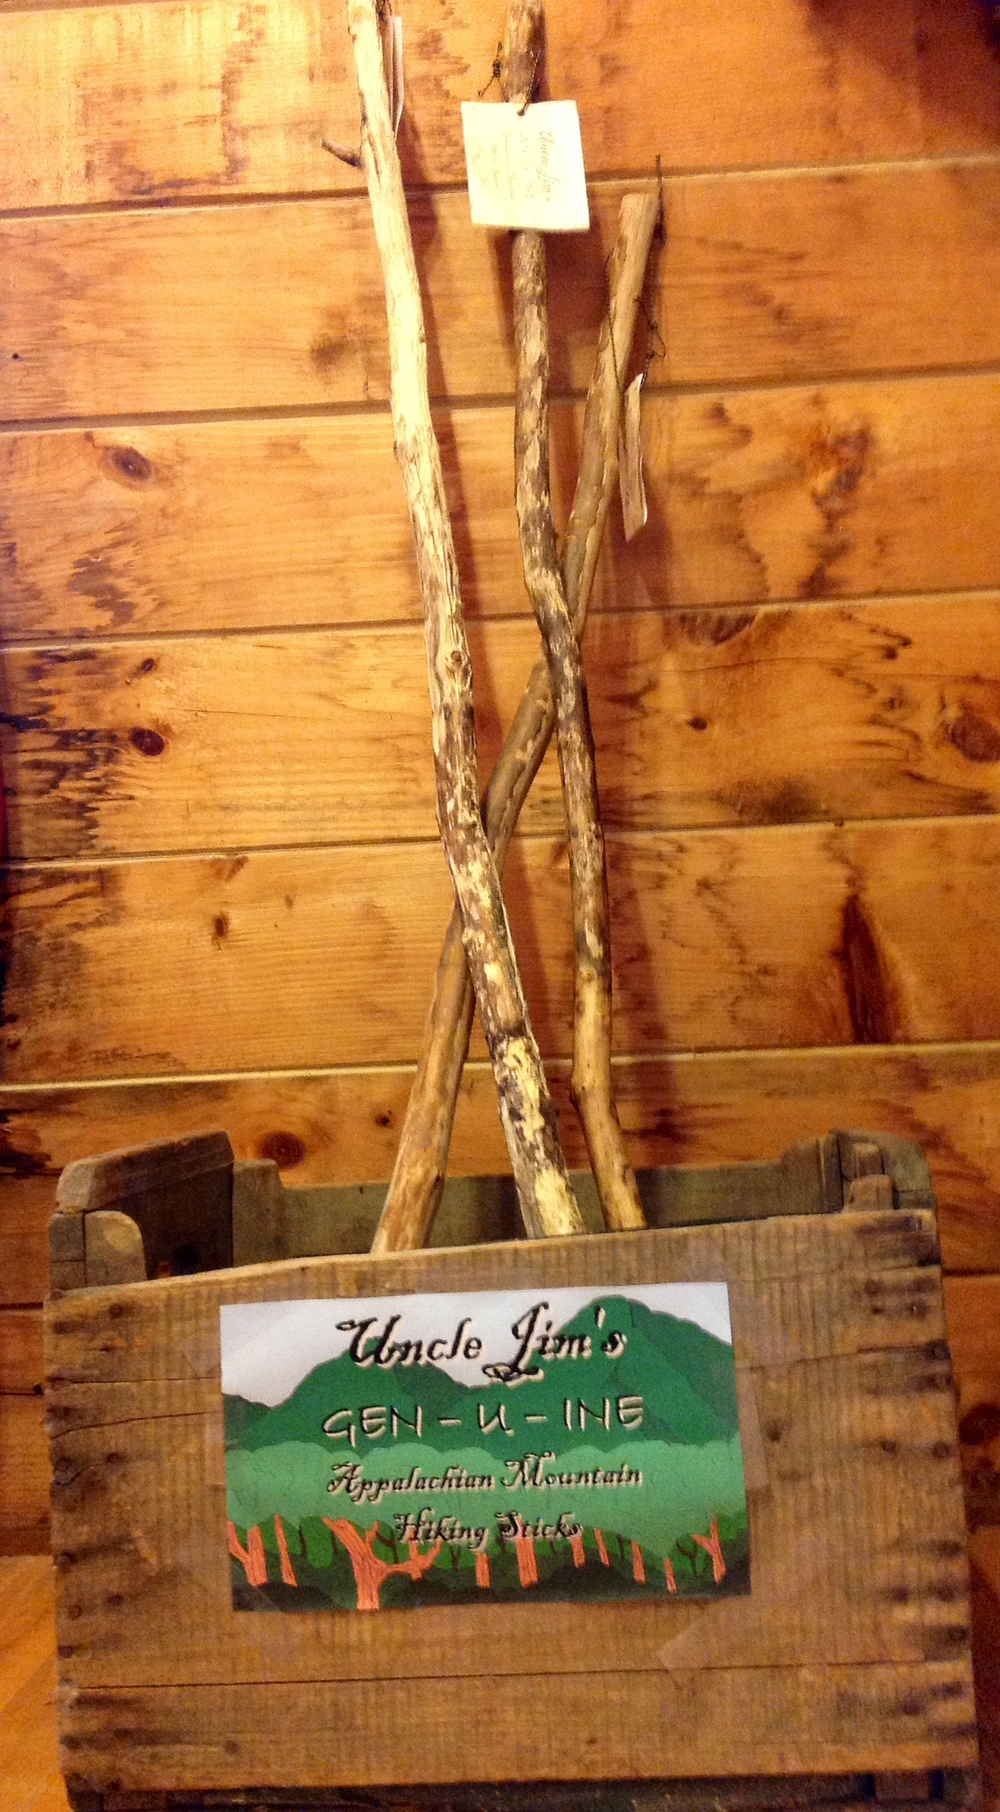 Walking sticks made by famed Uncle Jim